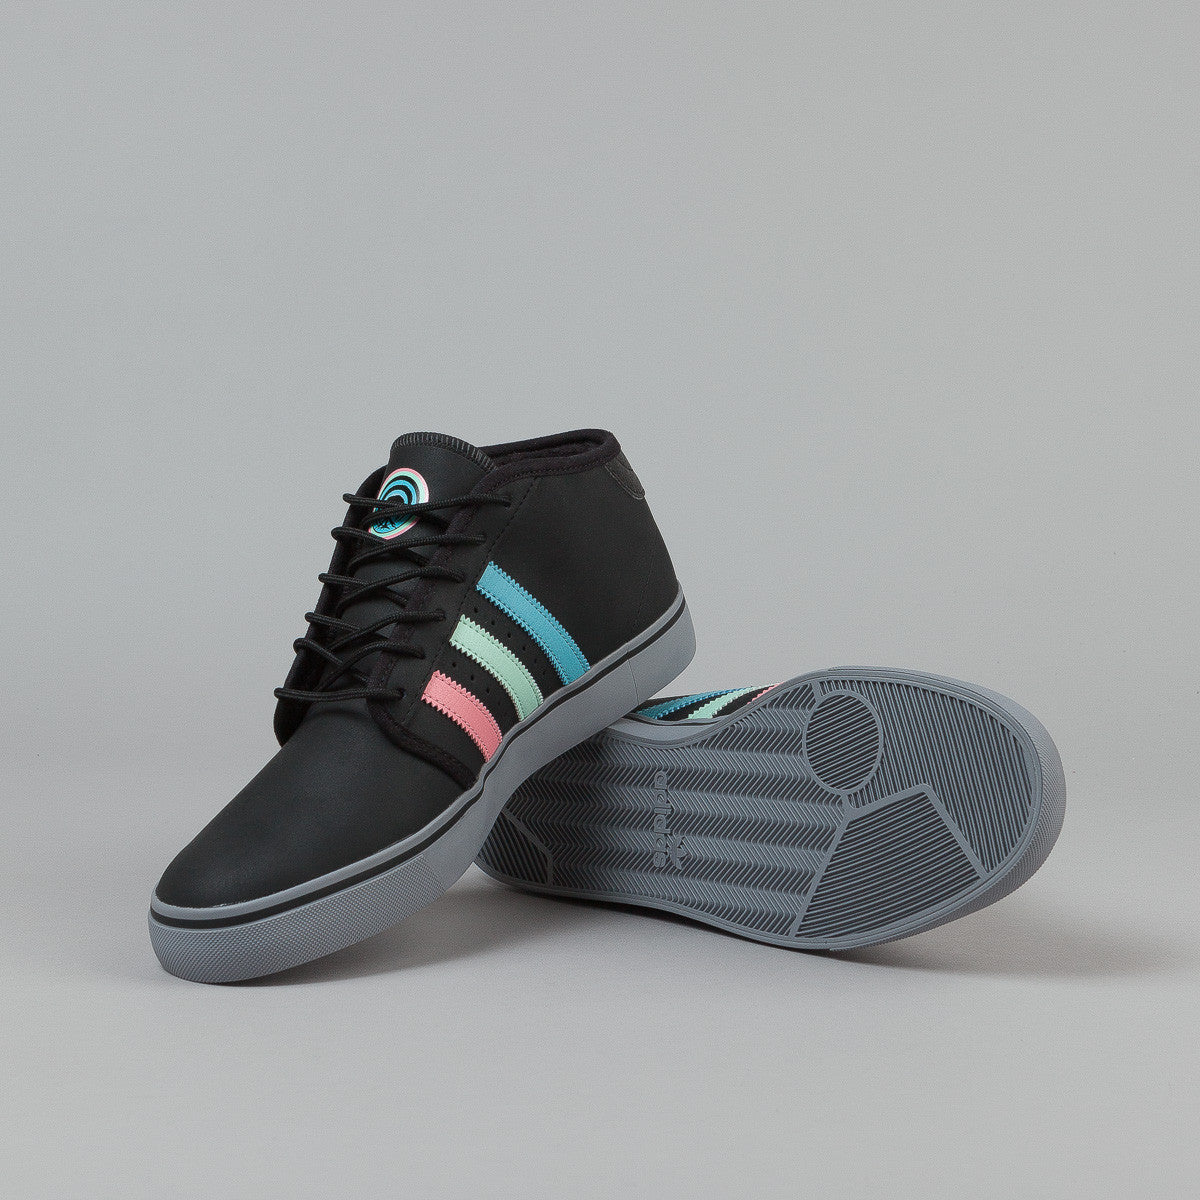 Adidas X Gnarly Seeley Mid Shoes - Black